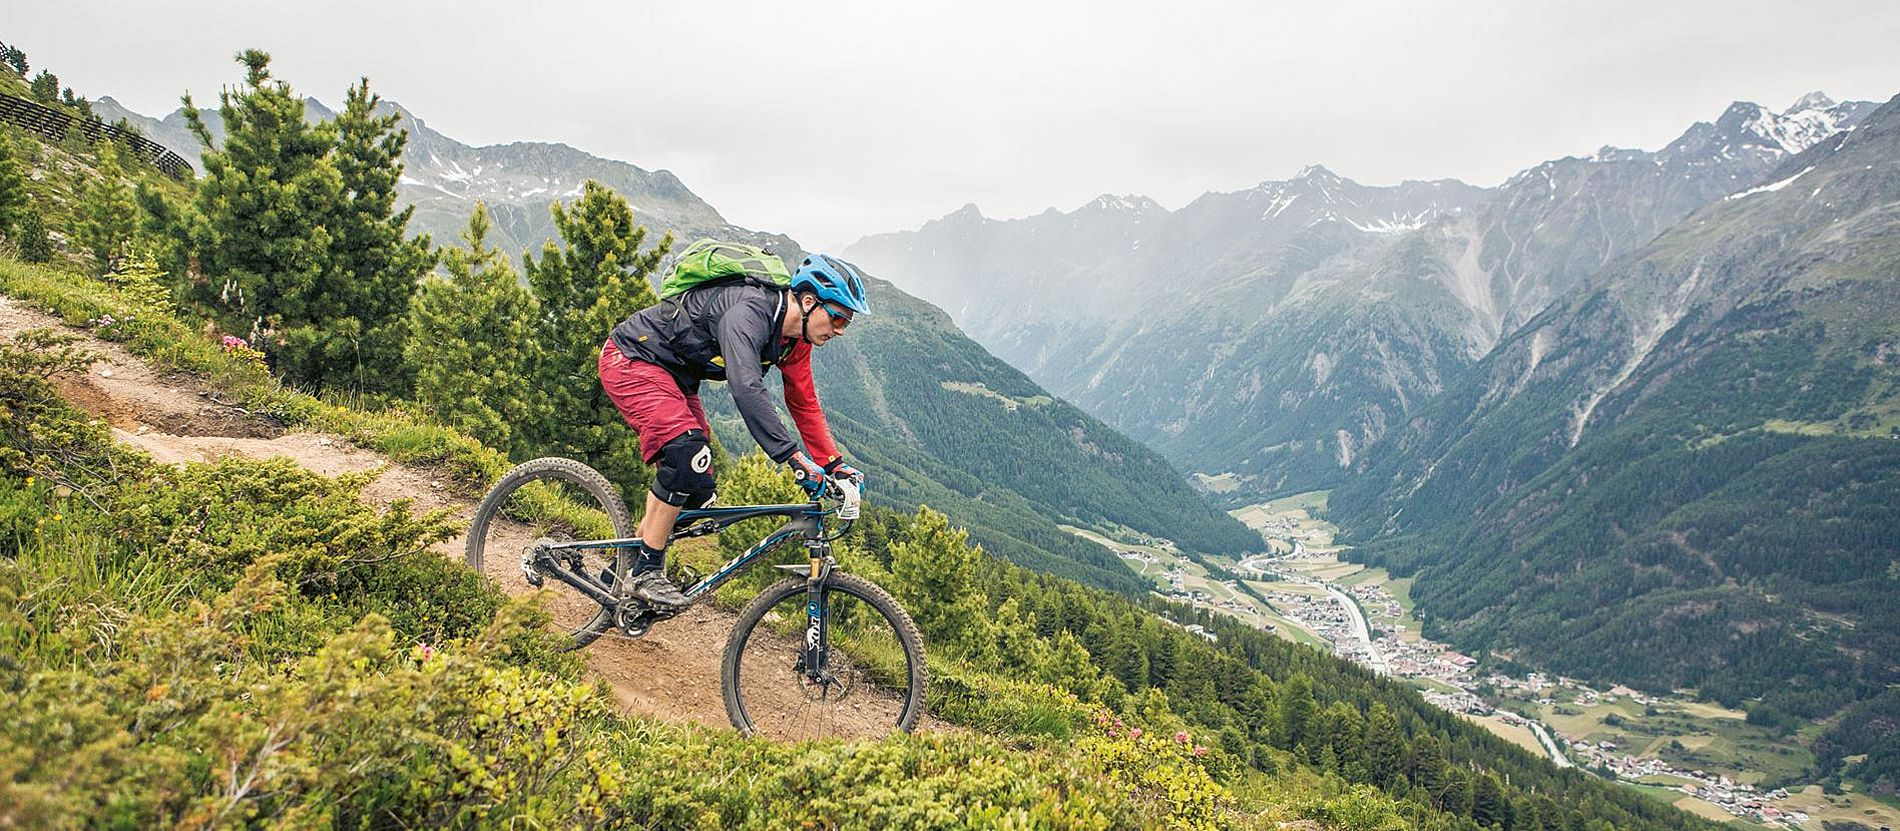 Mountainbiken in Sölden